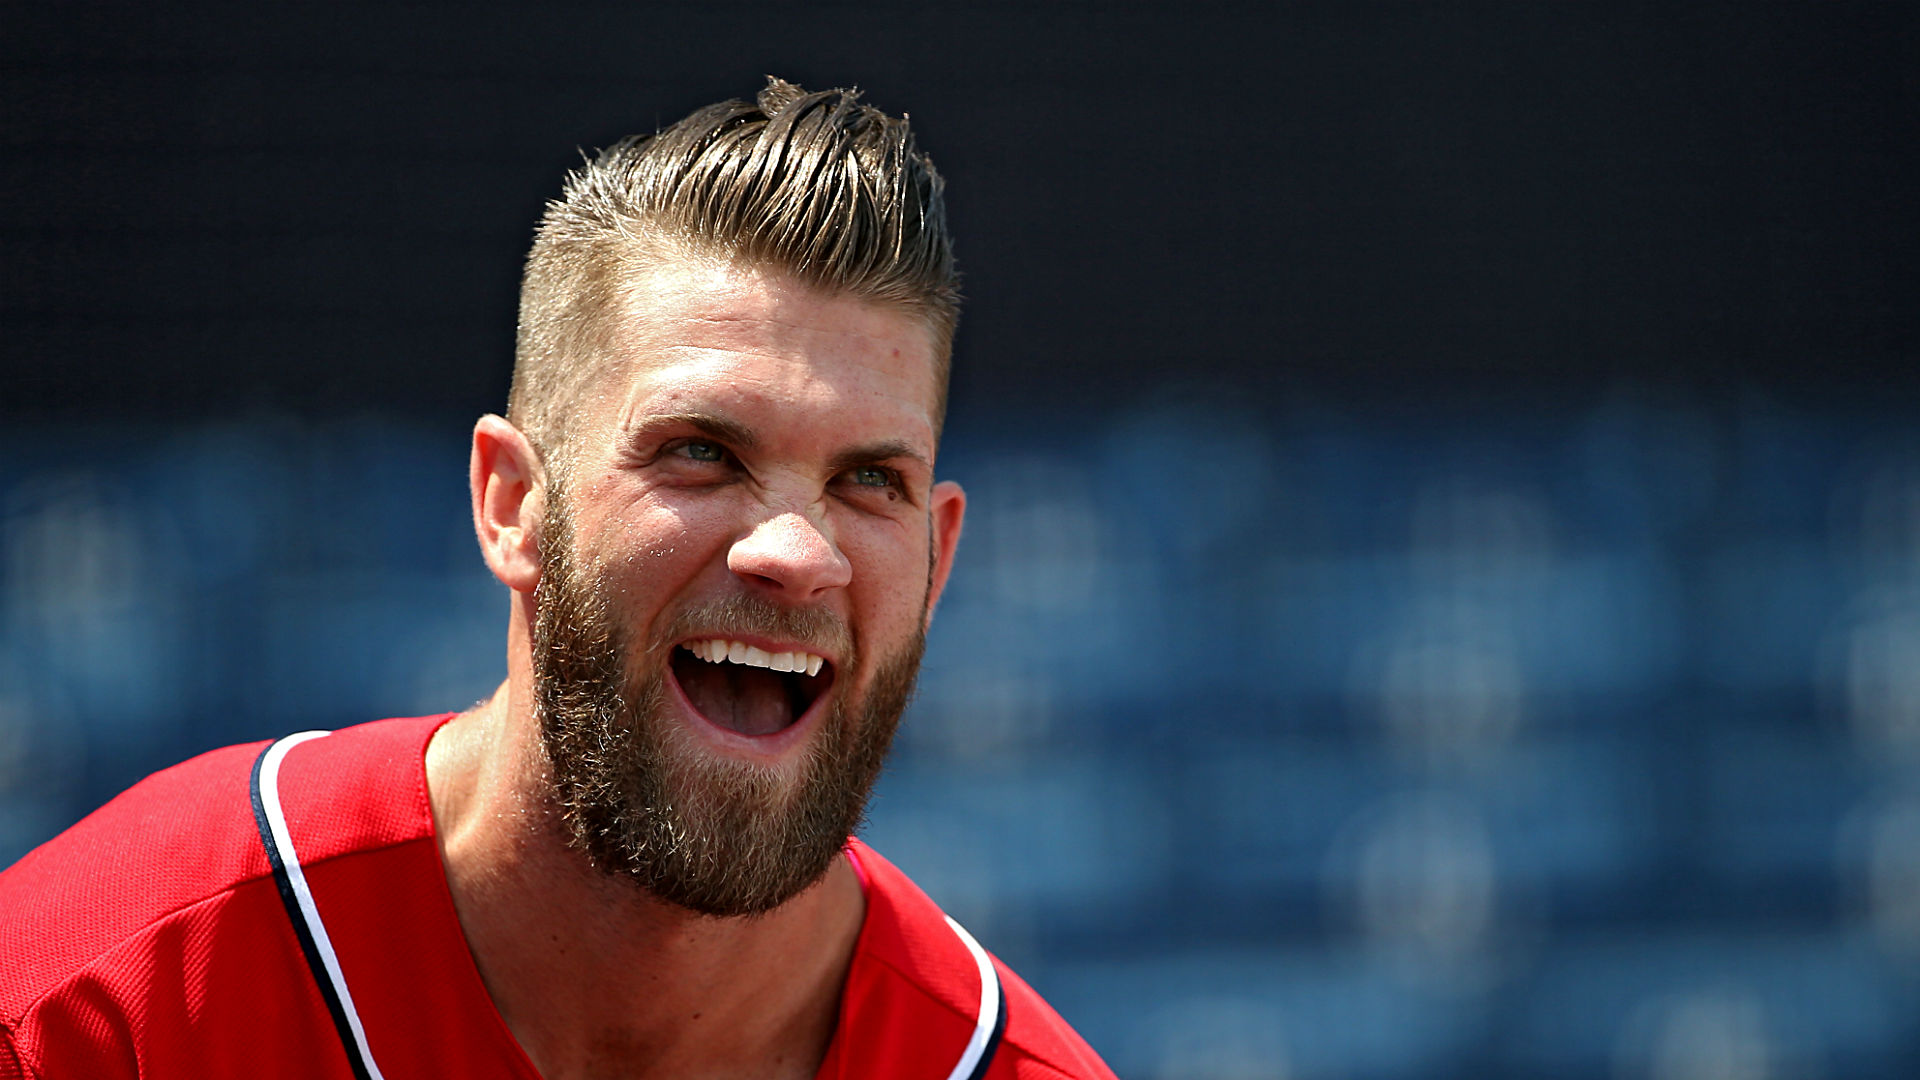 Bryce-Harper-012919-Getty-Images-FTR